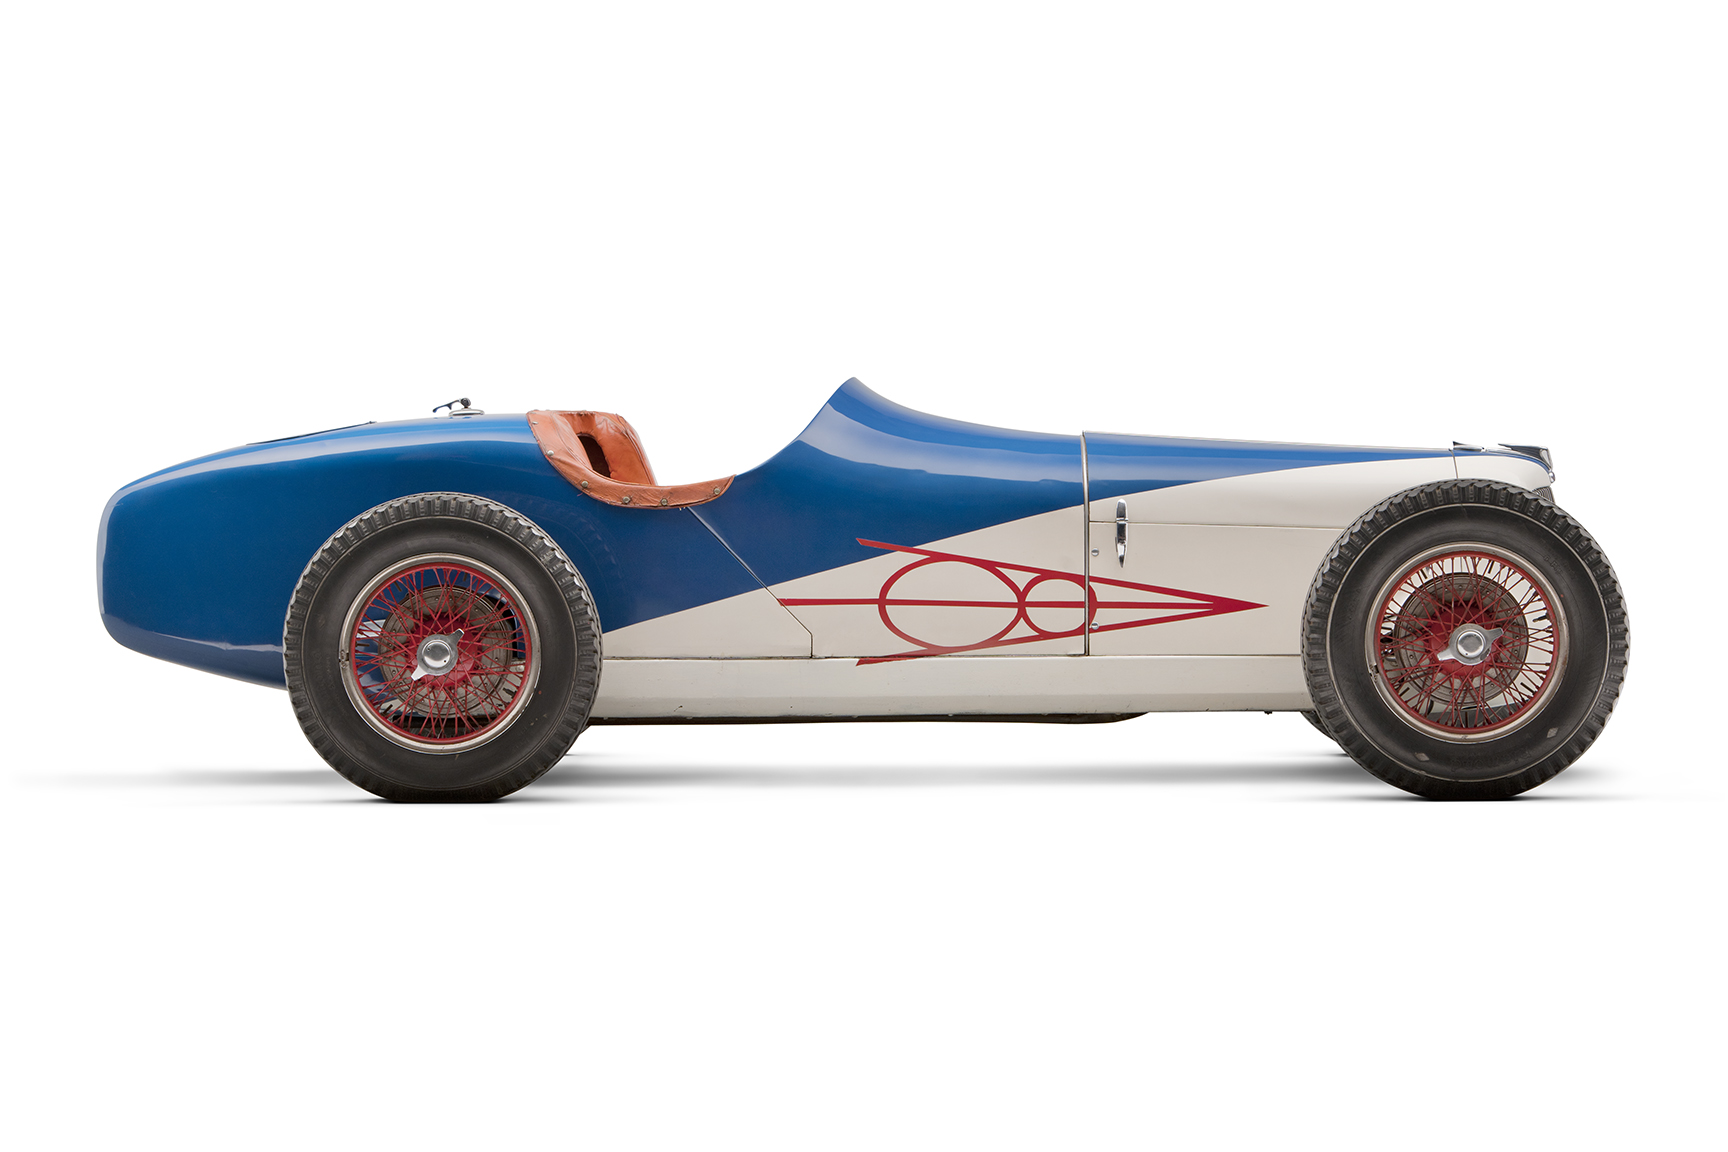 1935 Ford-Miller Special profile